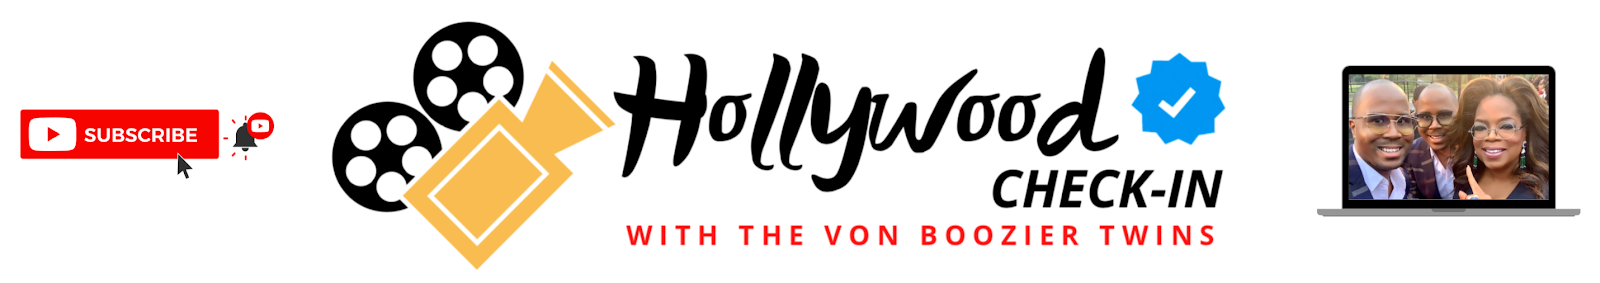 Hollywood Check-In with The Von Boozier Twins